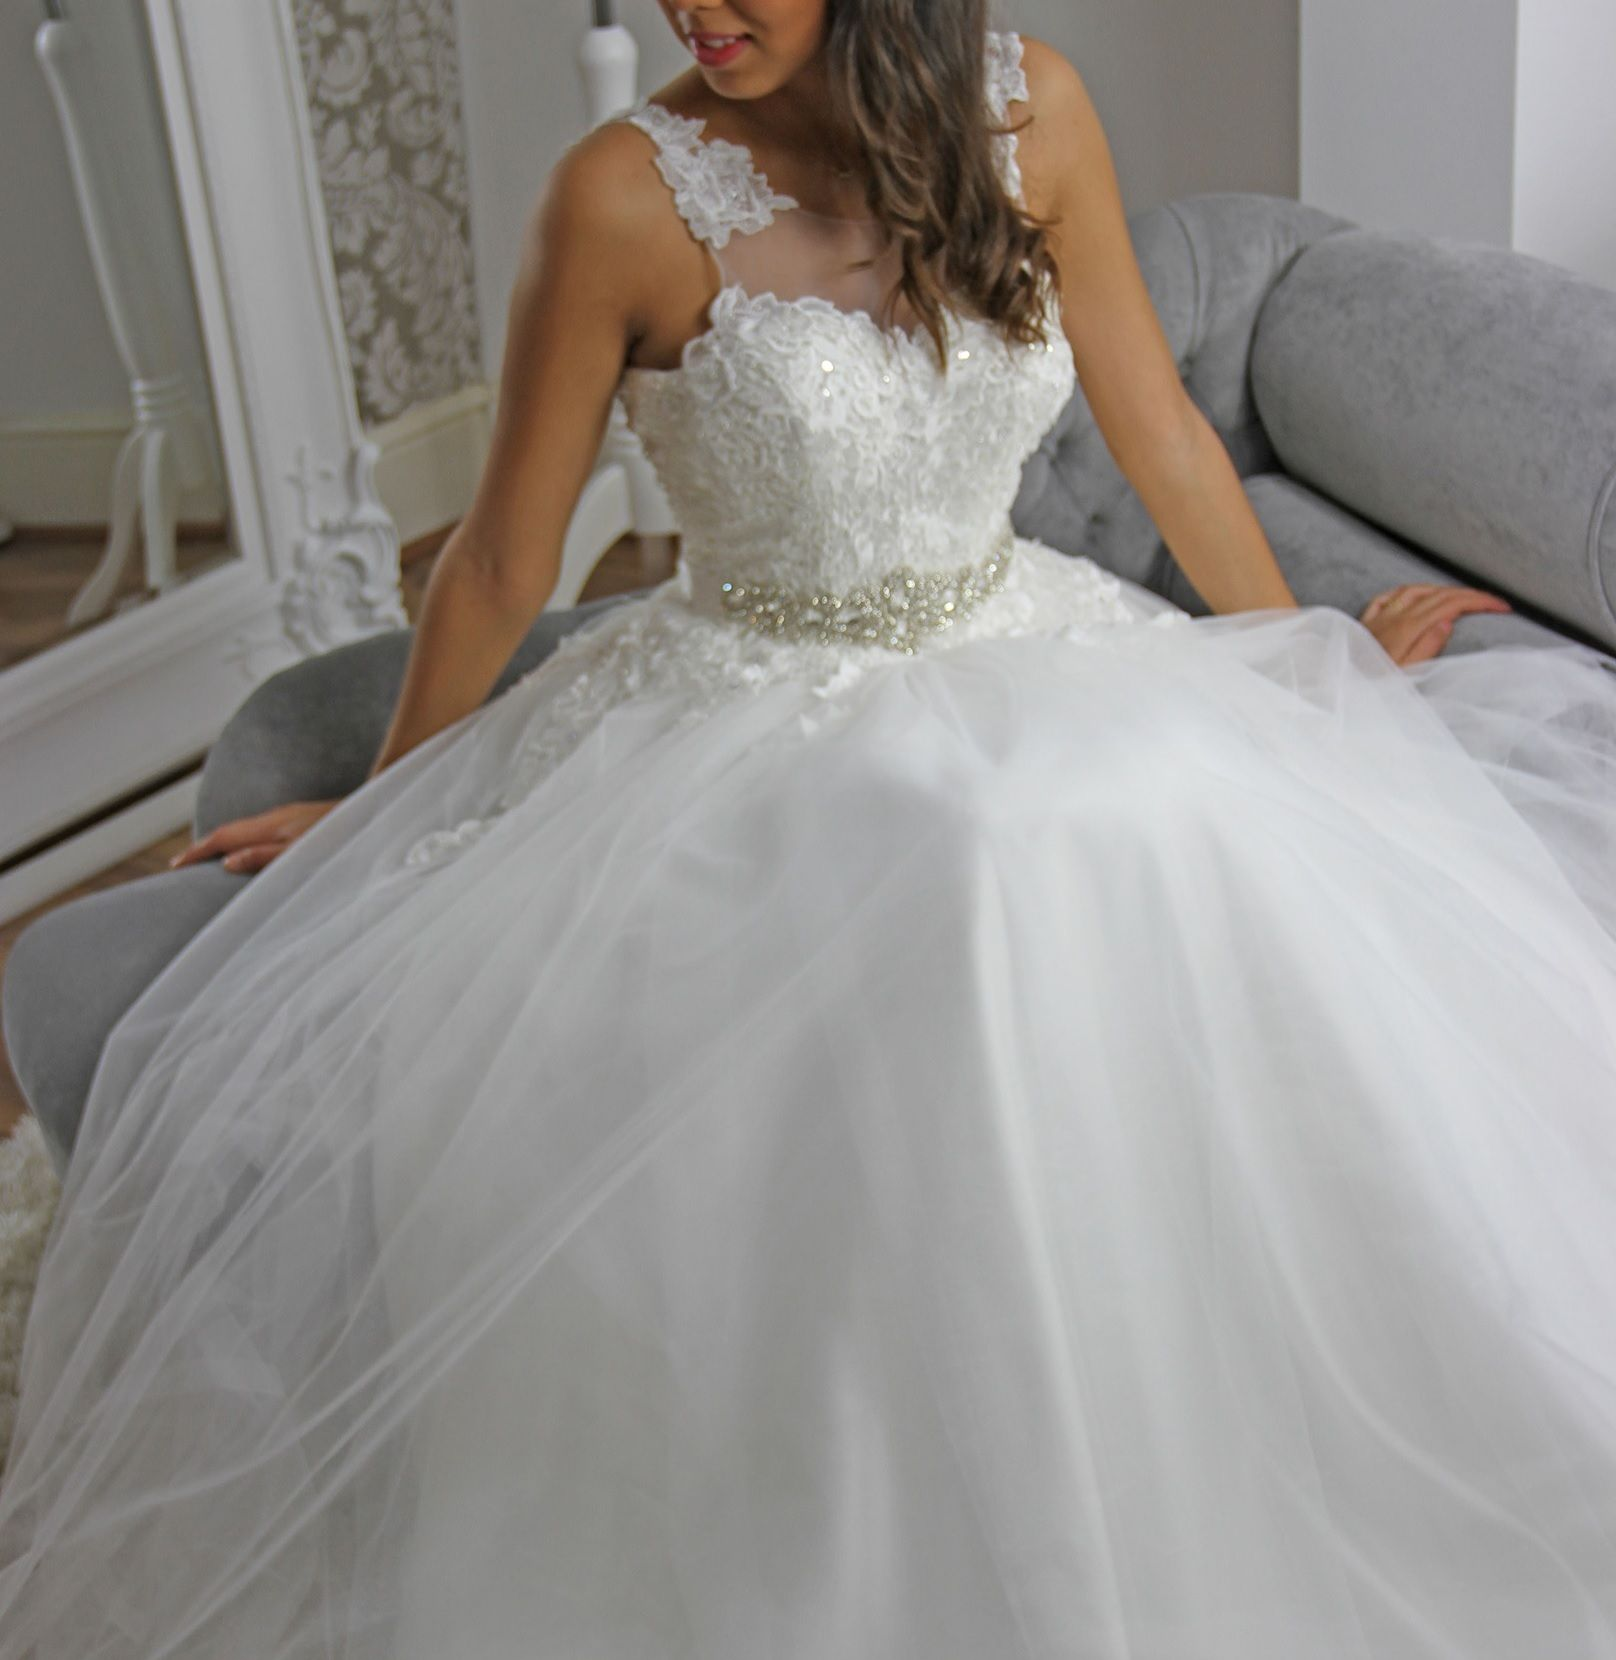 Princess Wedding Dress designed by our Customer, Tailored by Us ...